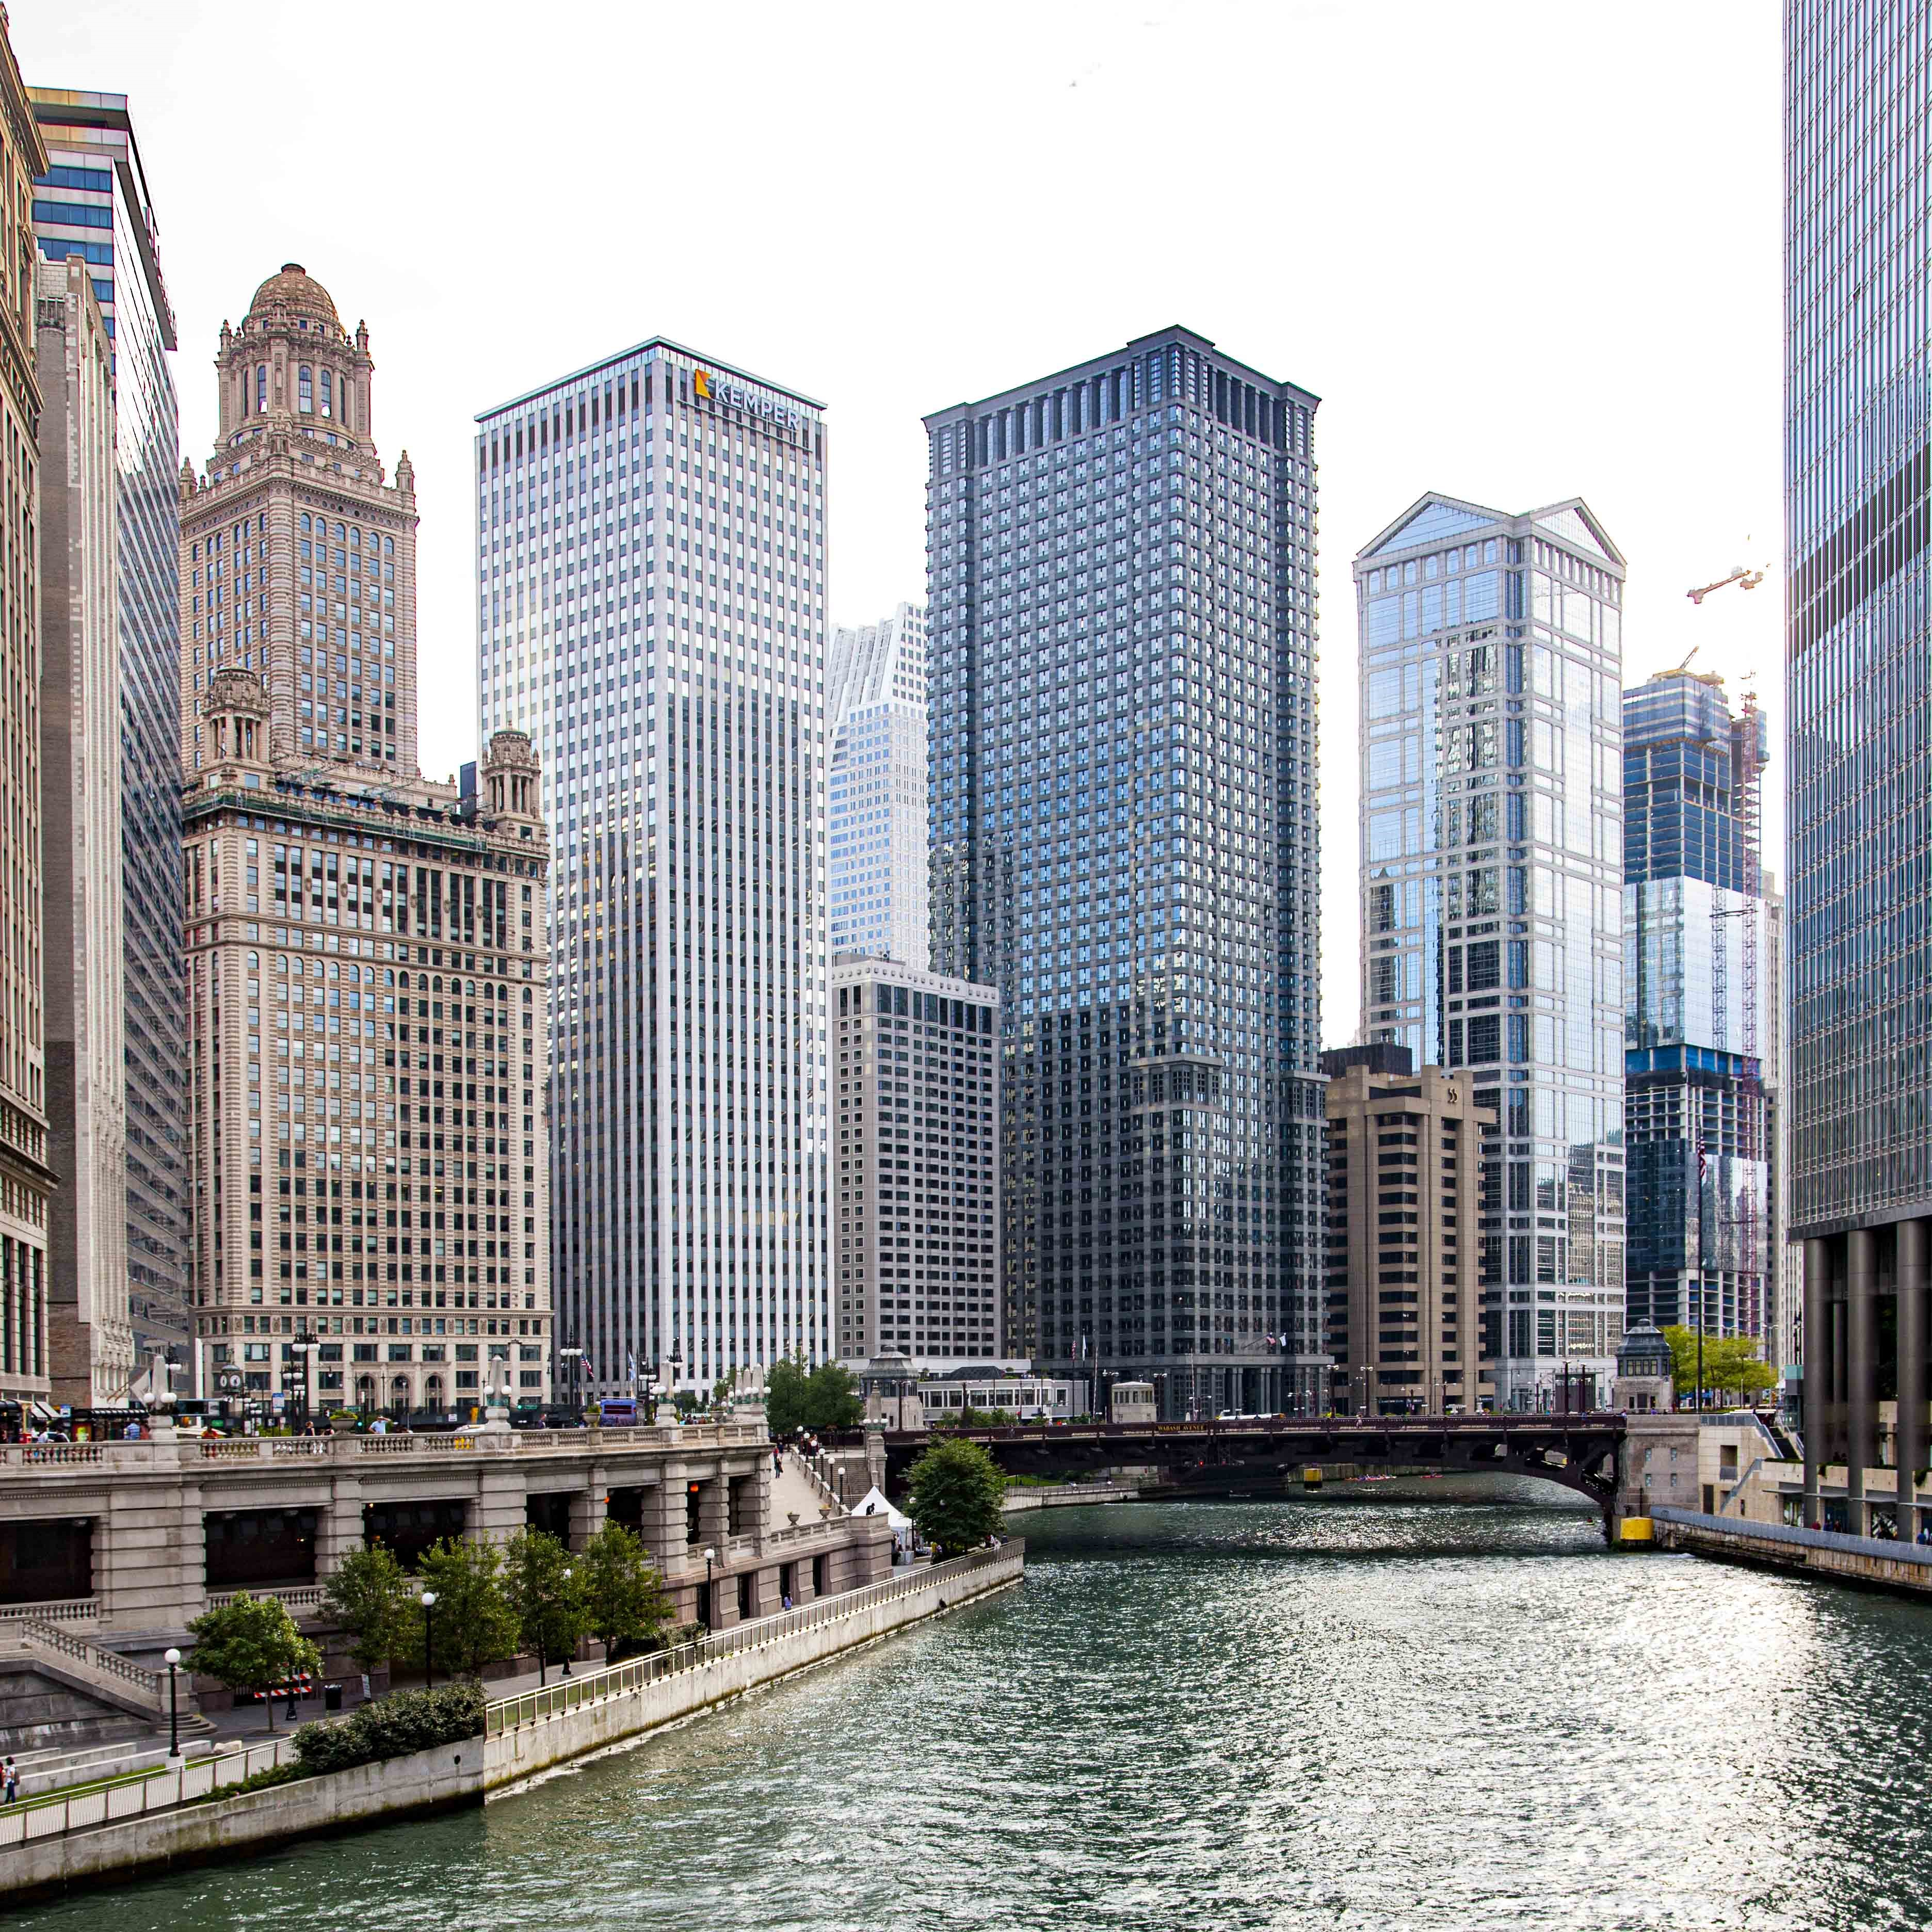 The Chicago River (photograph by Alan Ainsworth)